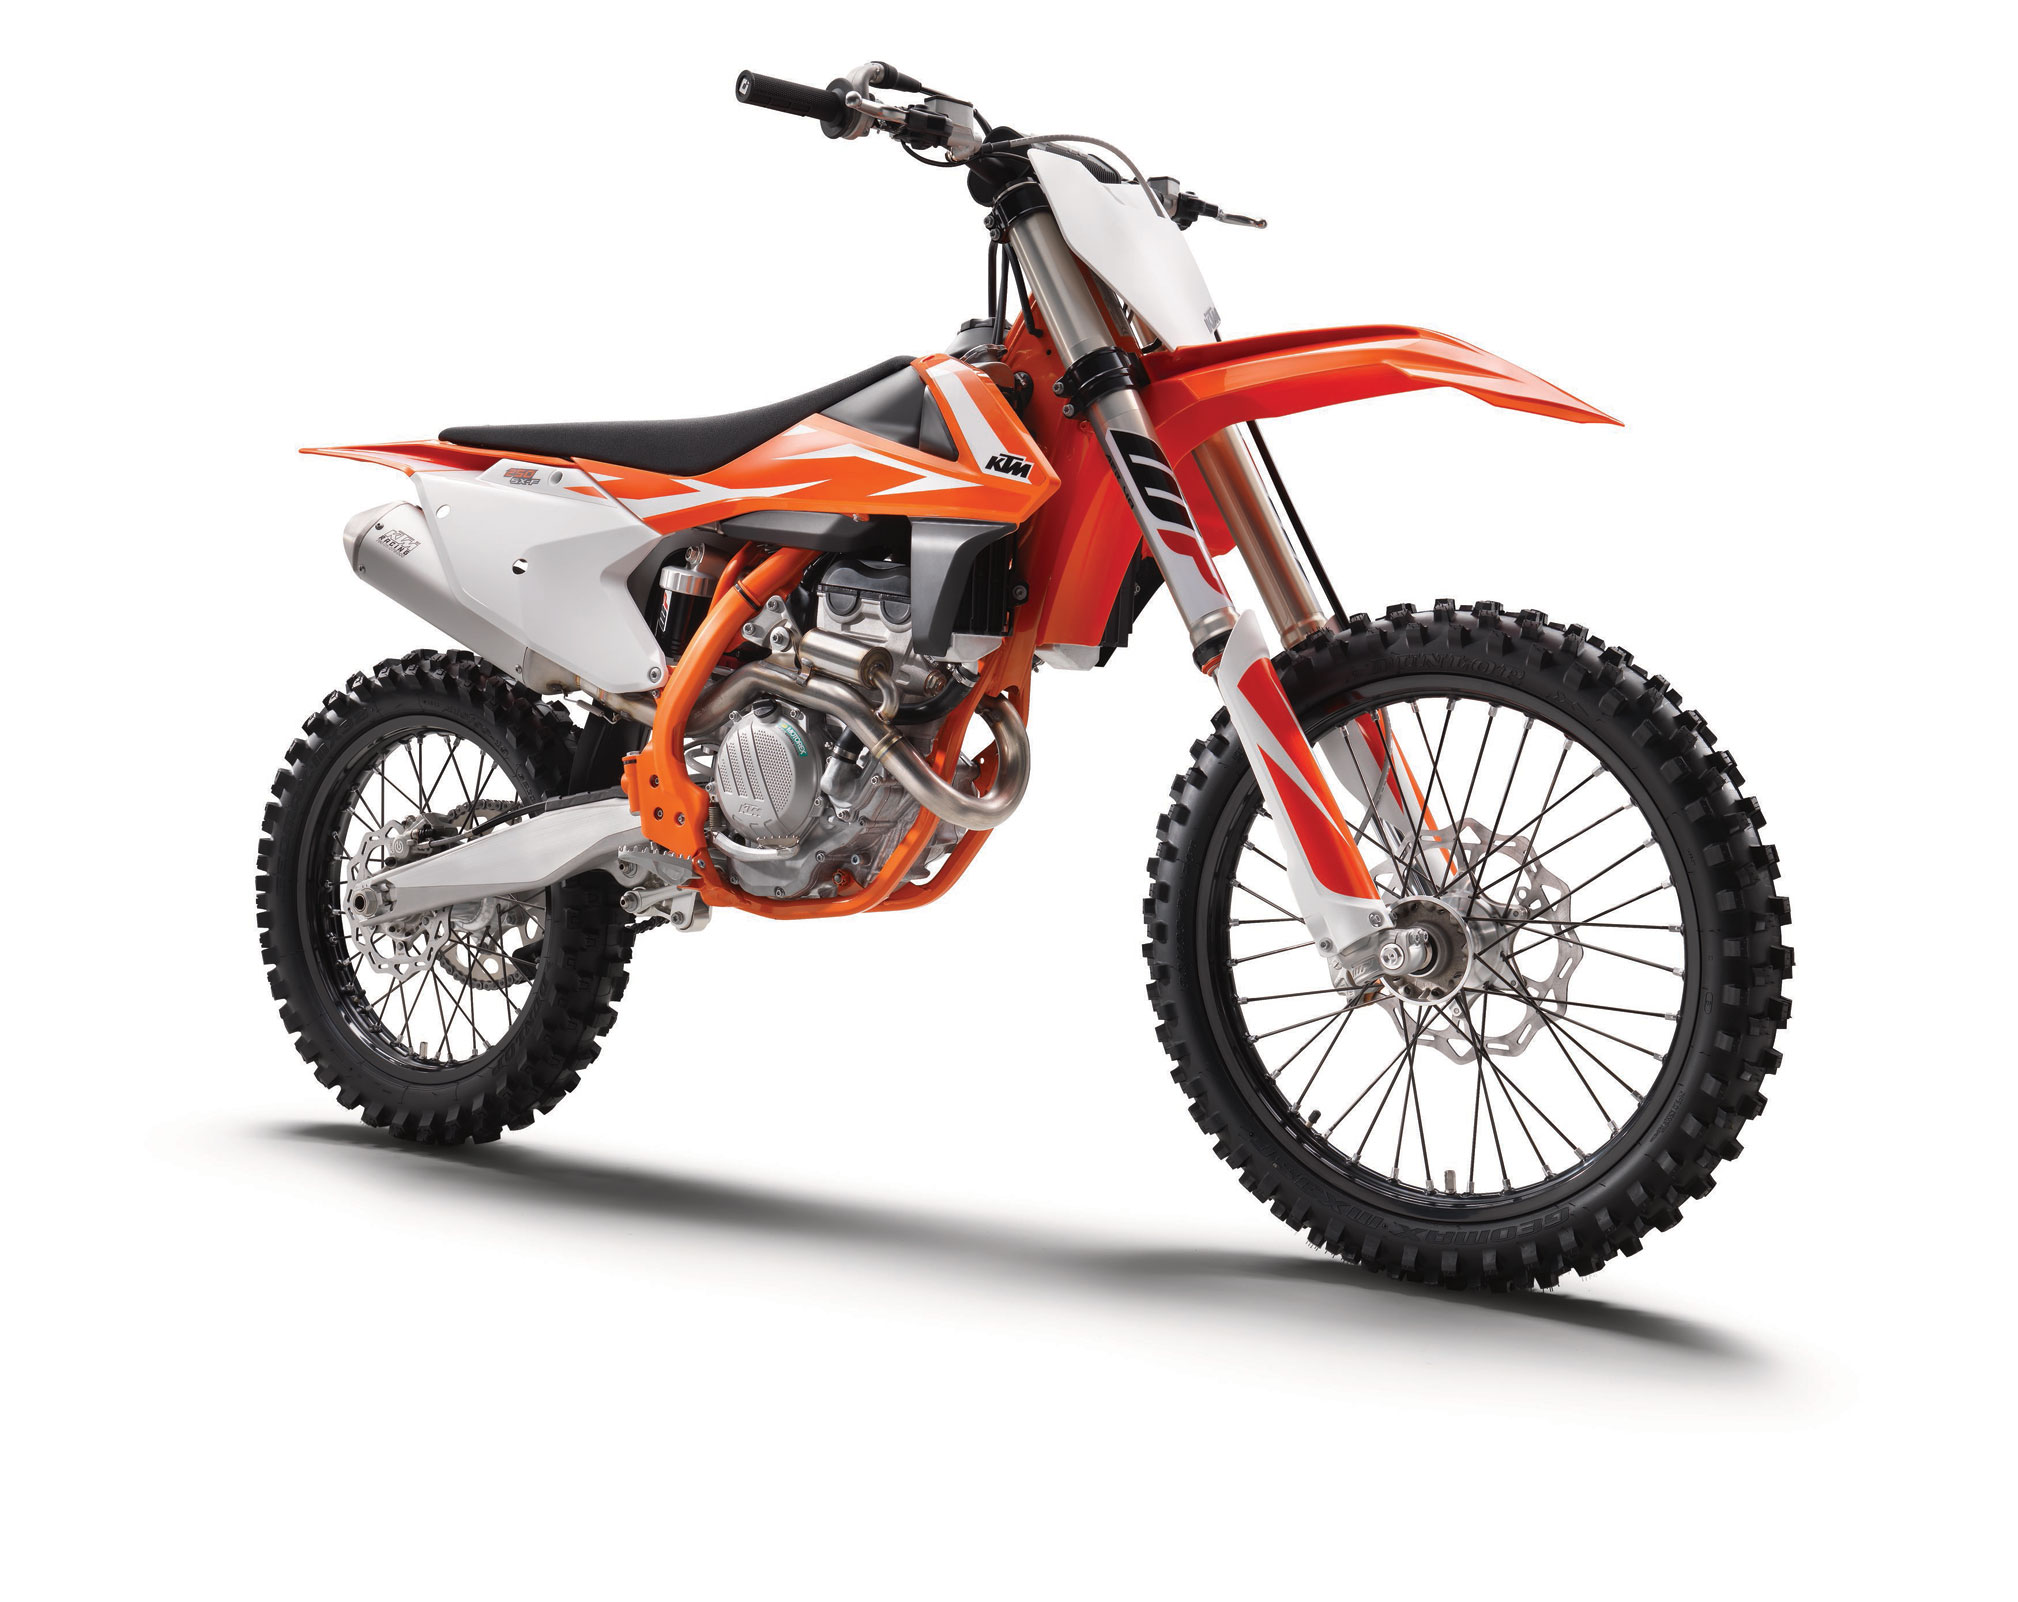 2018 ktm 250 sx f review totalmotorcycle rh totalmotorcycle com 2017 KTM 250 SX-F KTM 450